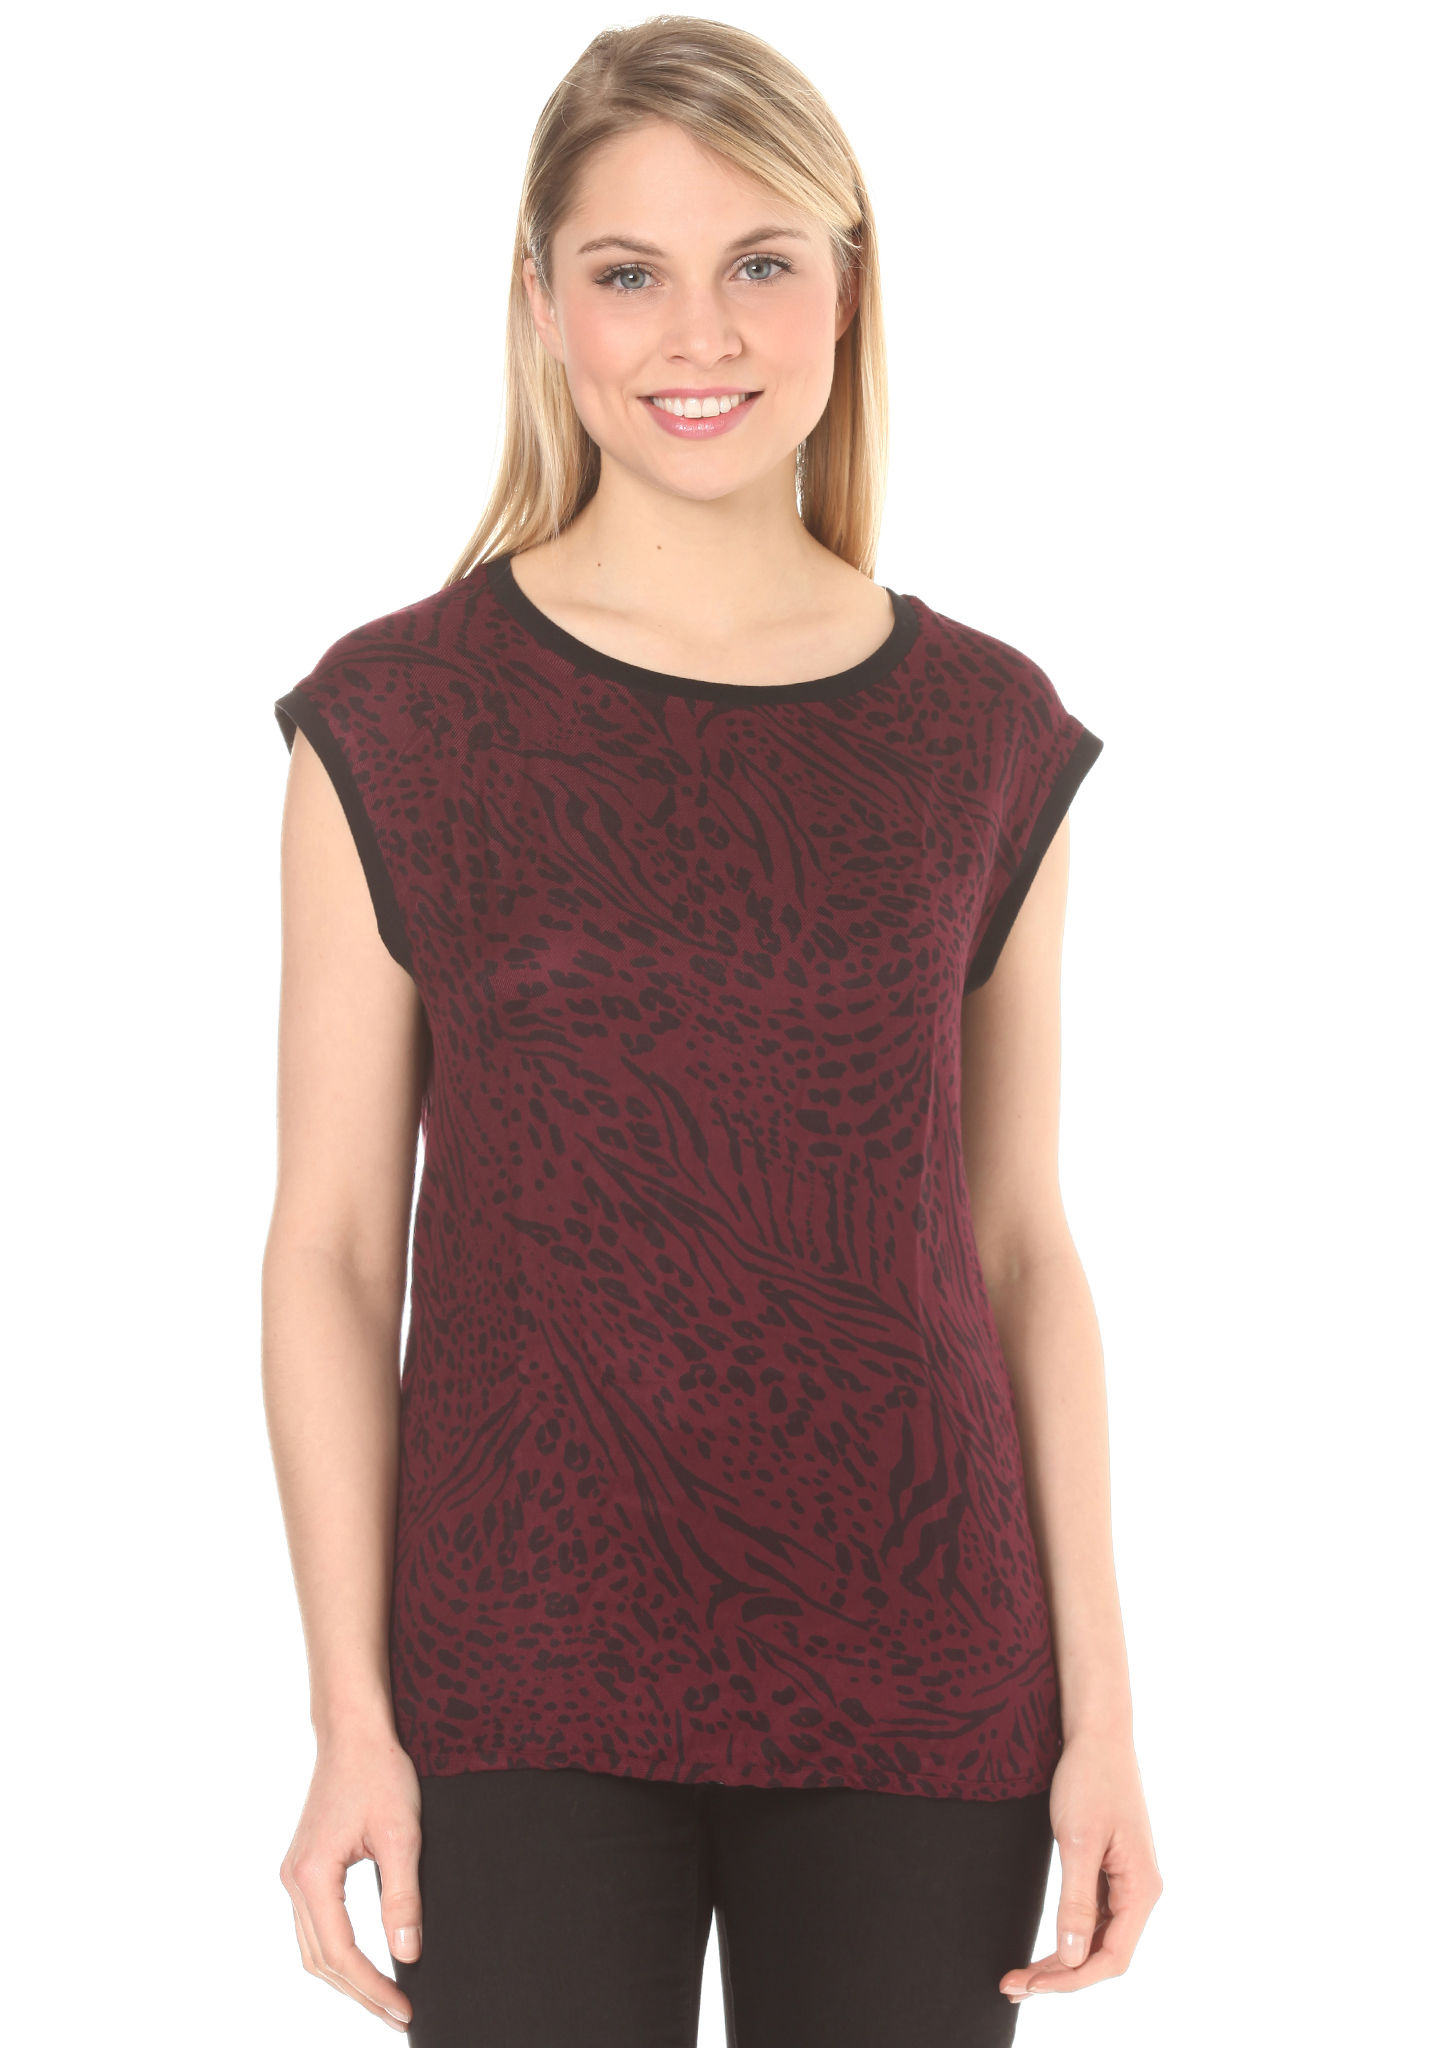 Pour Femme Pretty Rouge Planet Wild Sports Volcom Top shxtrdCQ